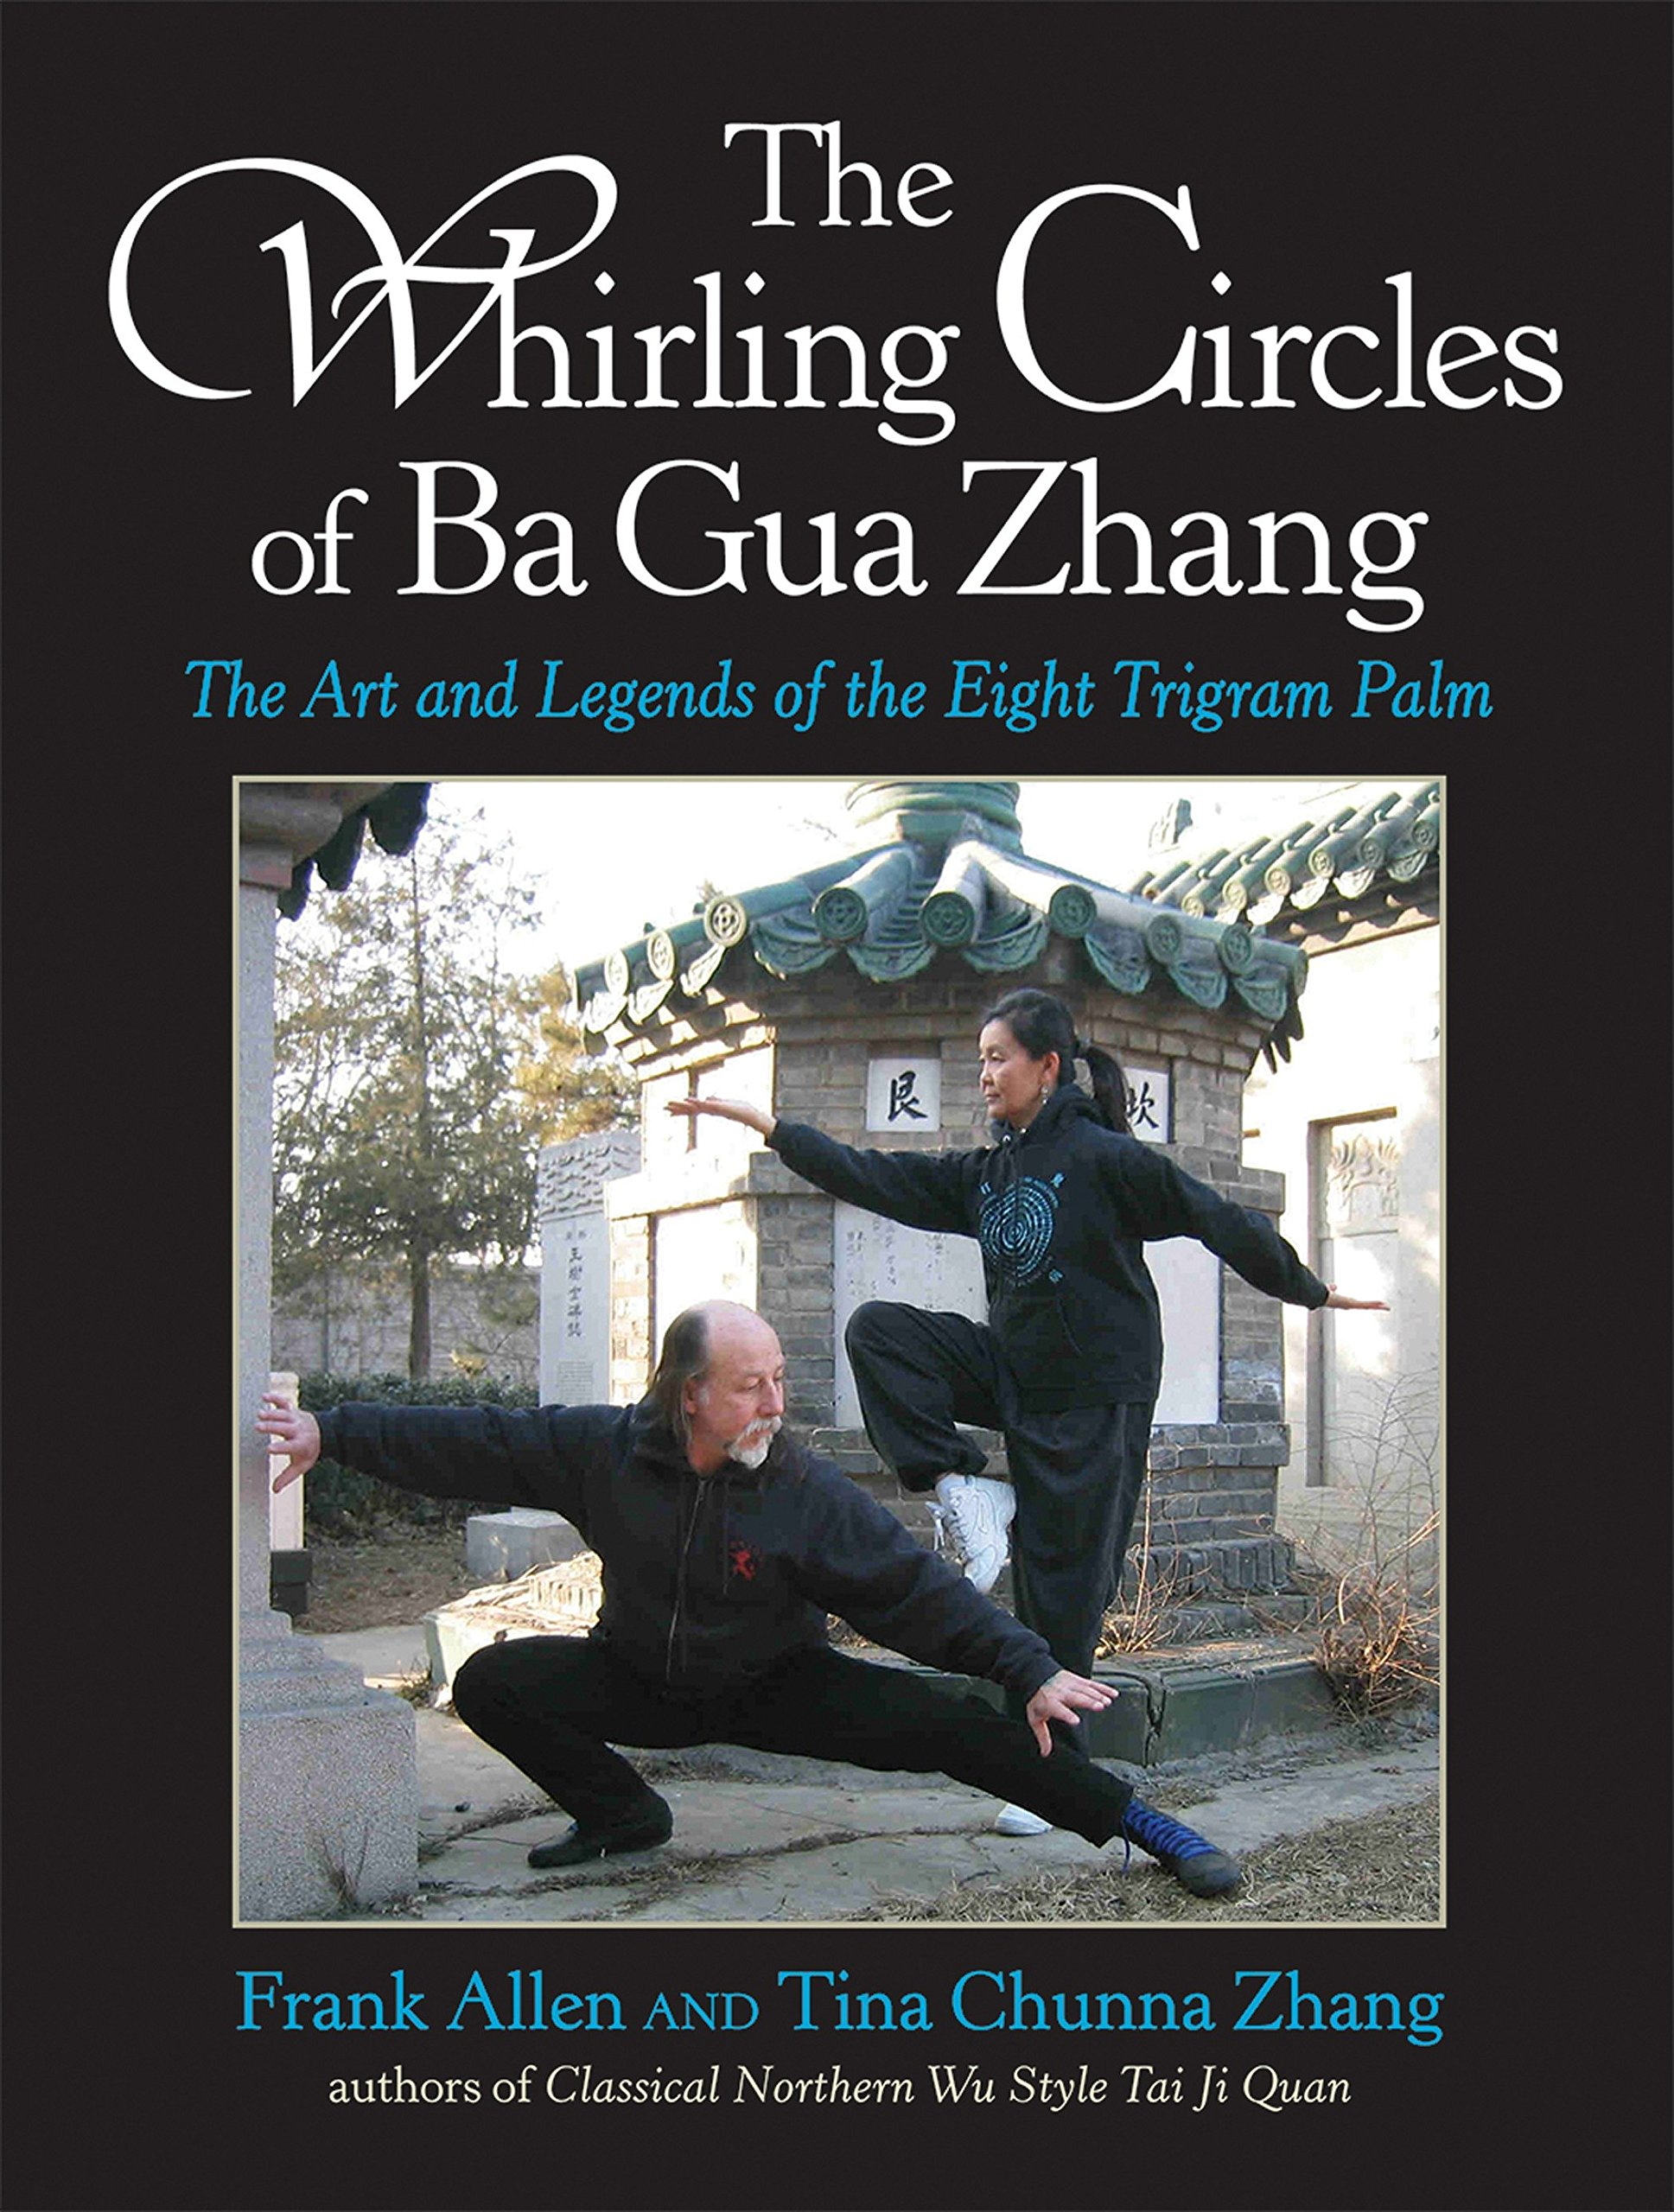 Download The Whirling Circles Of Ba Gua Zhang: The Art And Legends Of The Eight Trigram Palm 